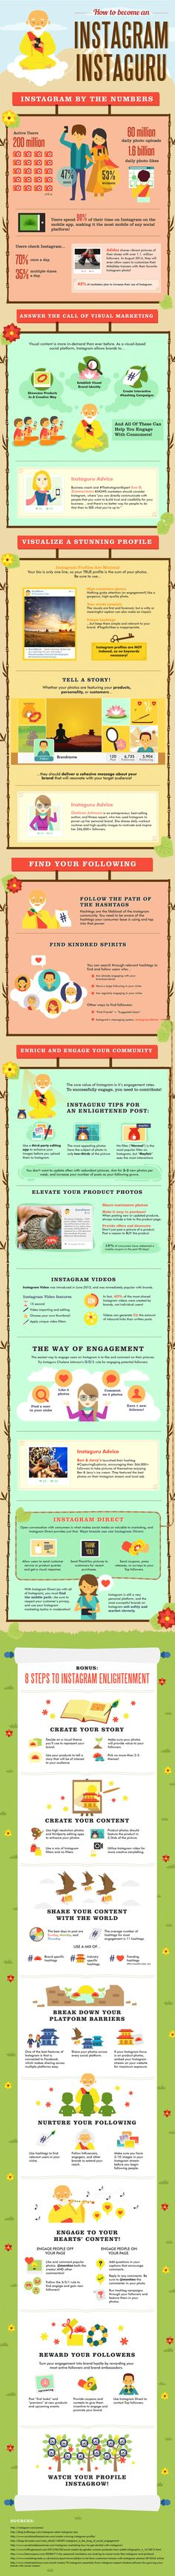 Tactics to Help You Get More Instagram Followers Today SociallyStacked